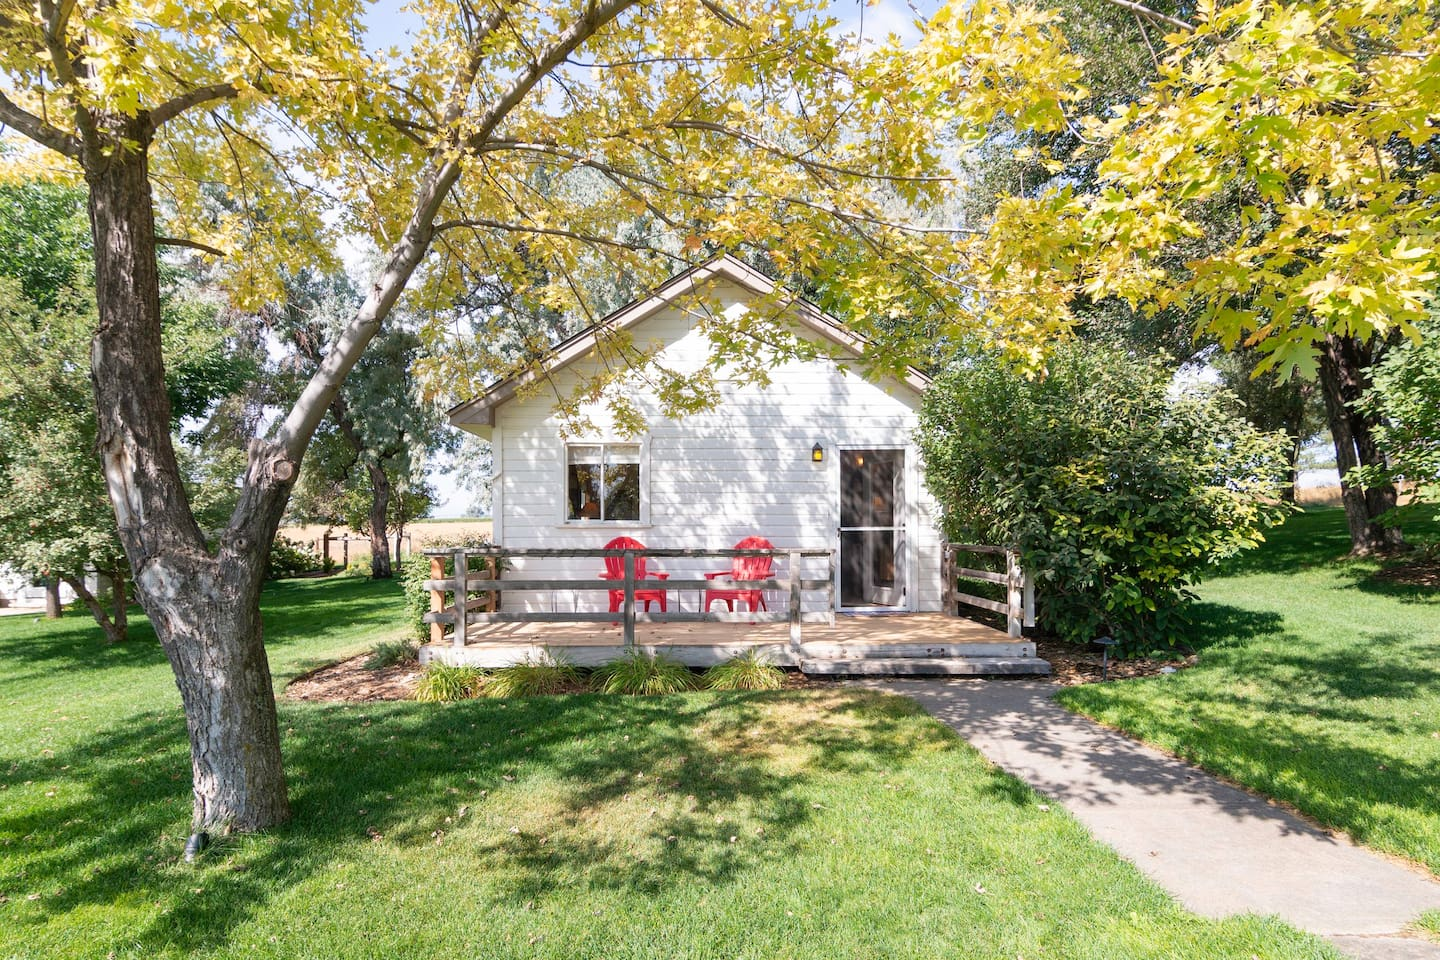 The Cottage at Four Clover Farm is one of the best Airbnbs in Boulder